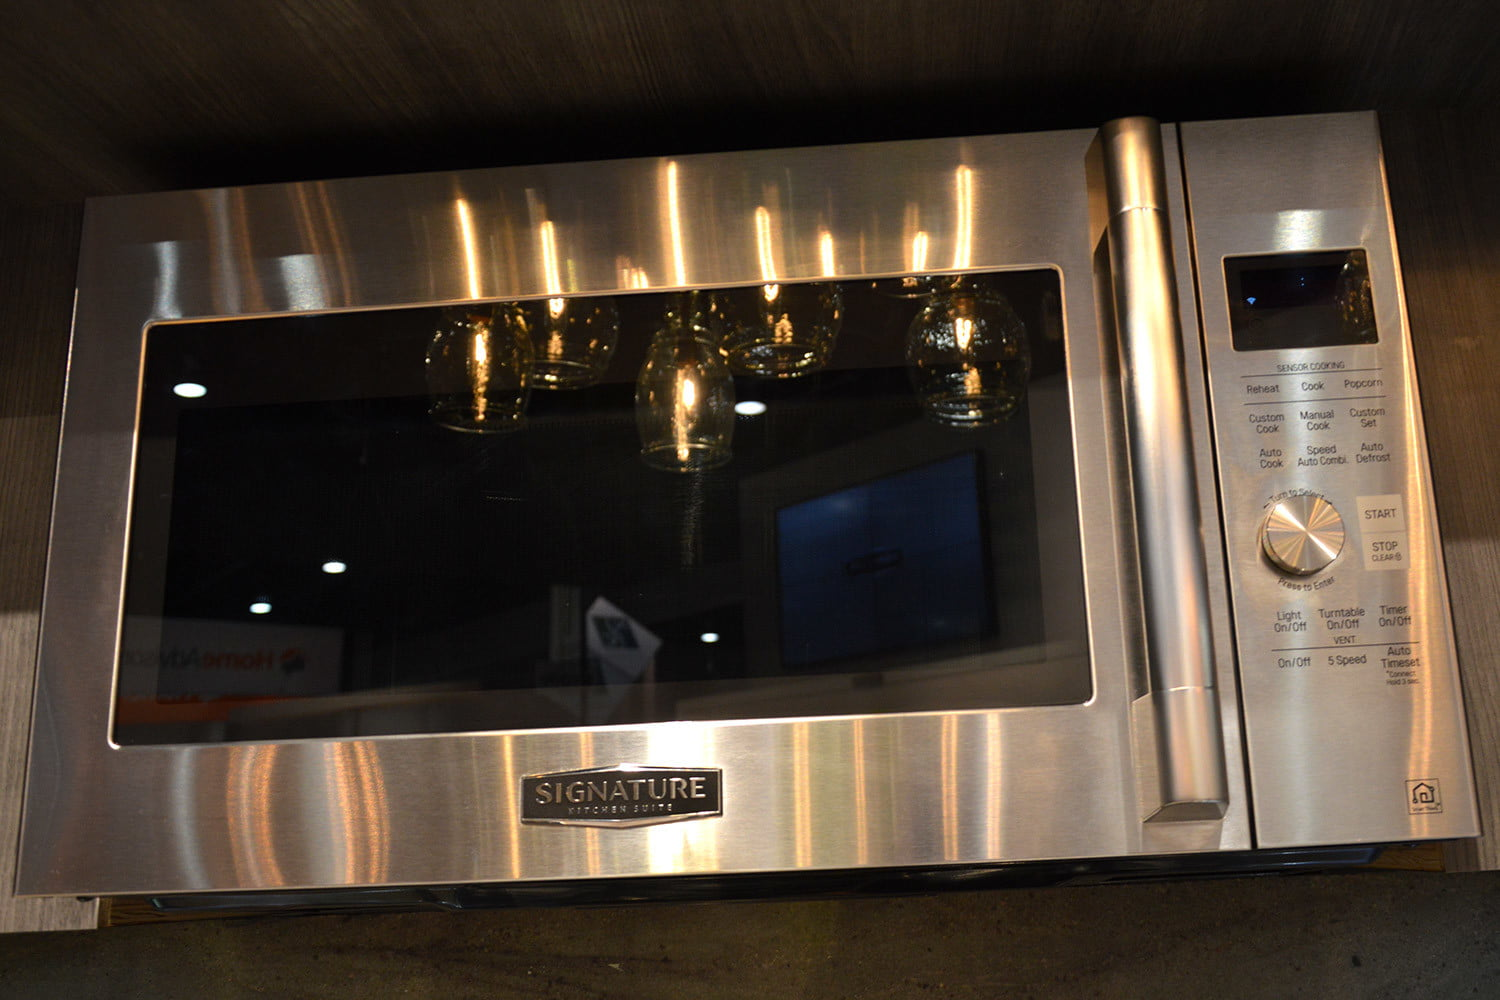 signature is a luxury smart appliance brand from lg kitchen suite over the range microwave oven 0367